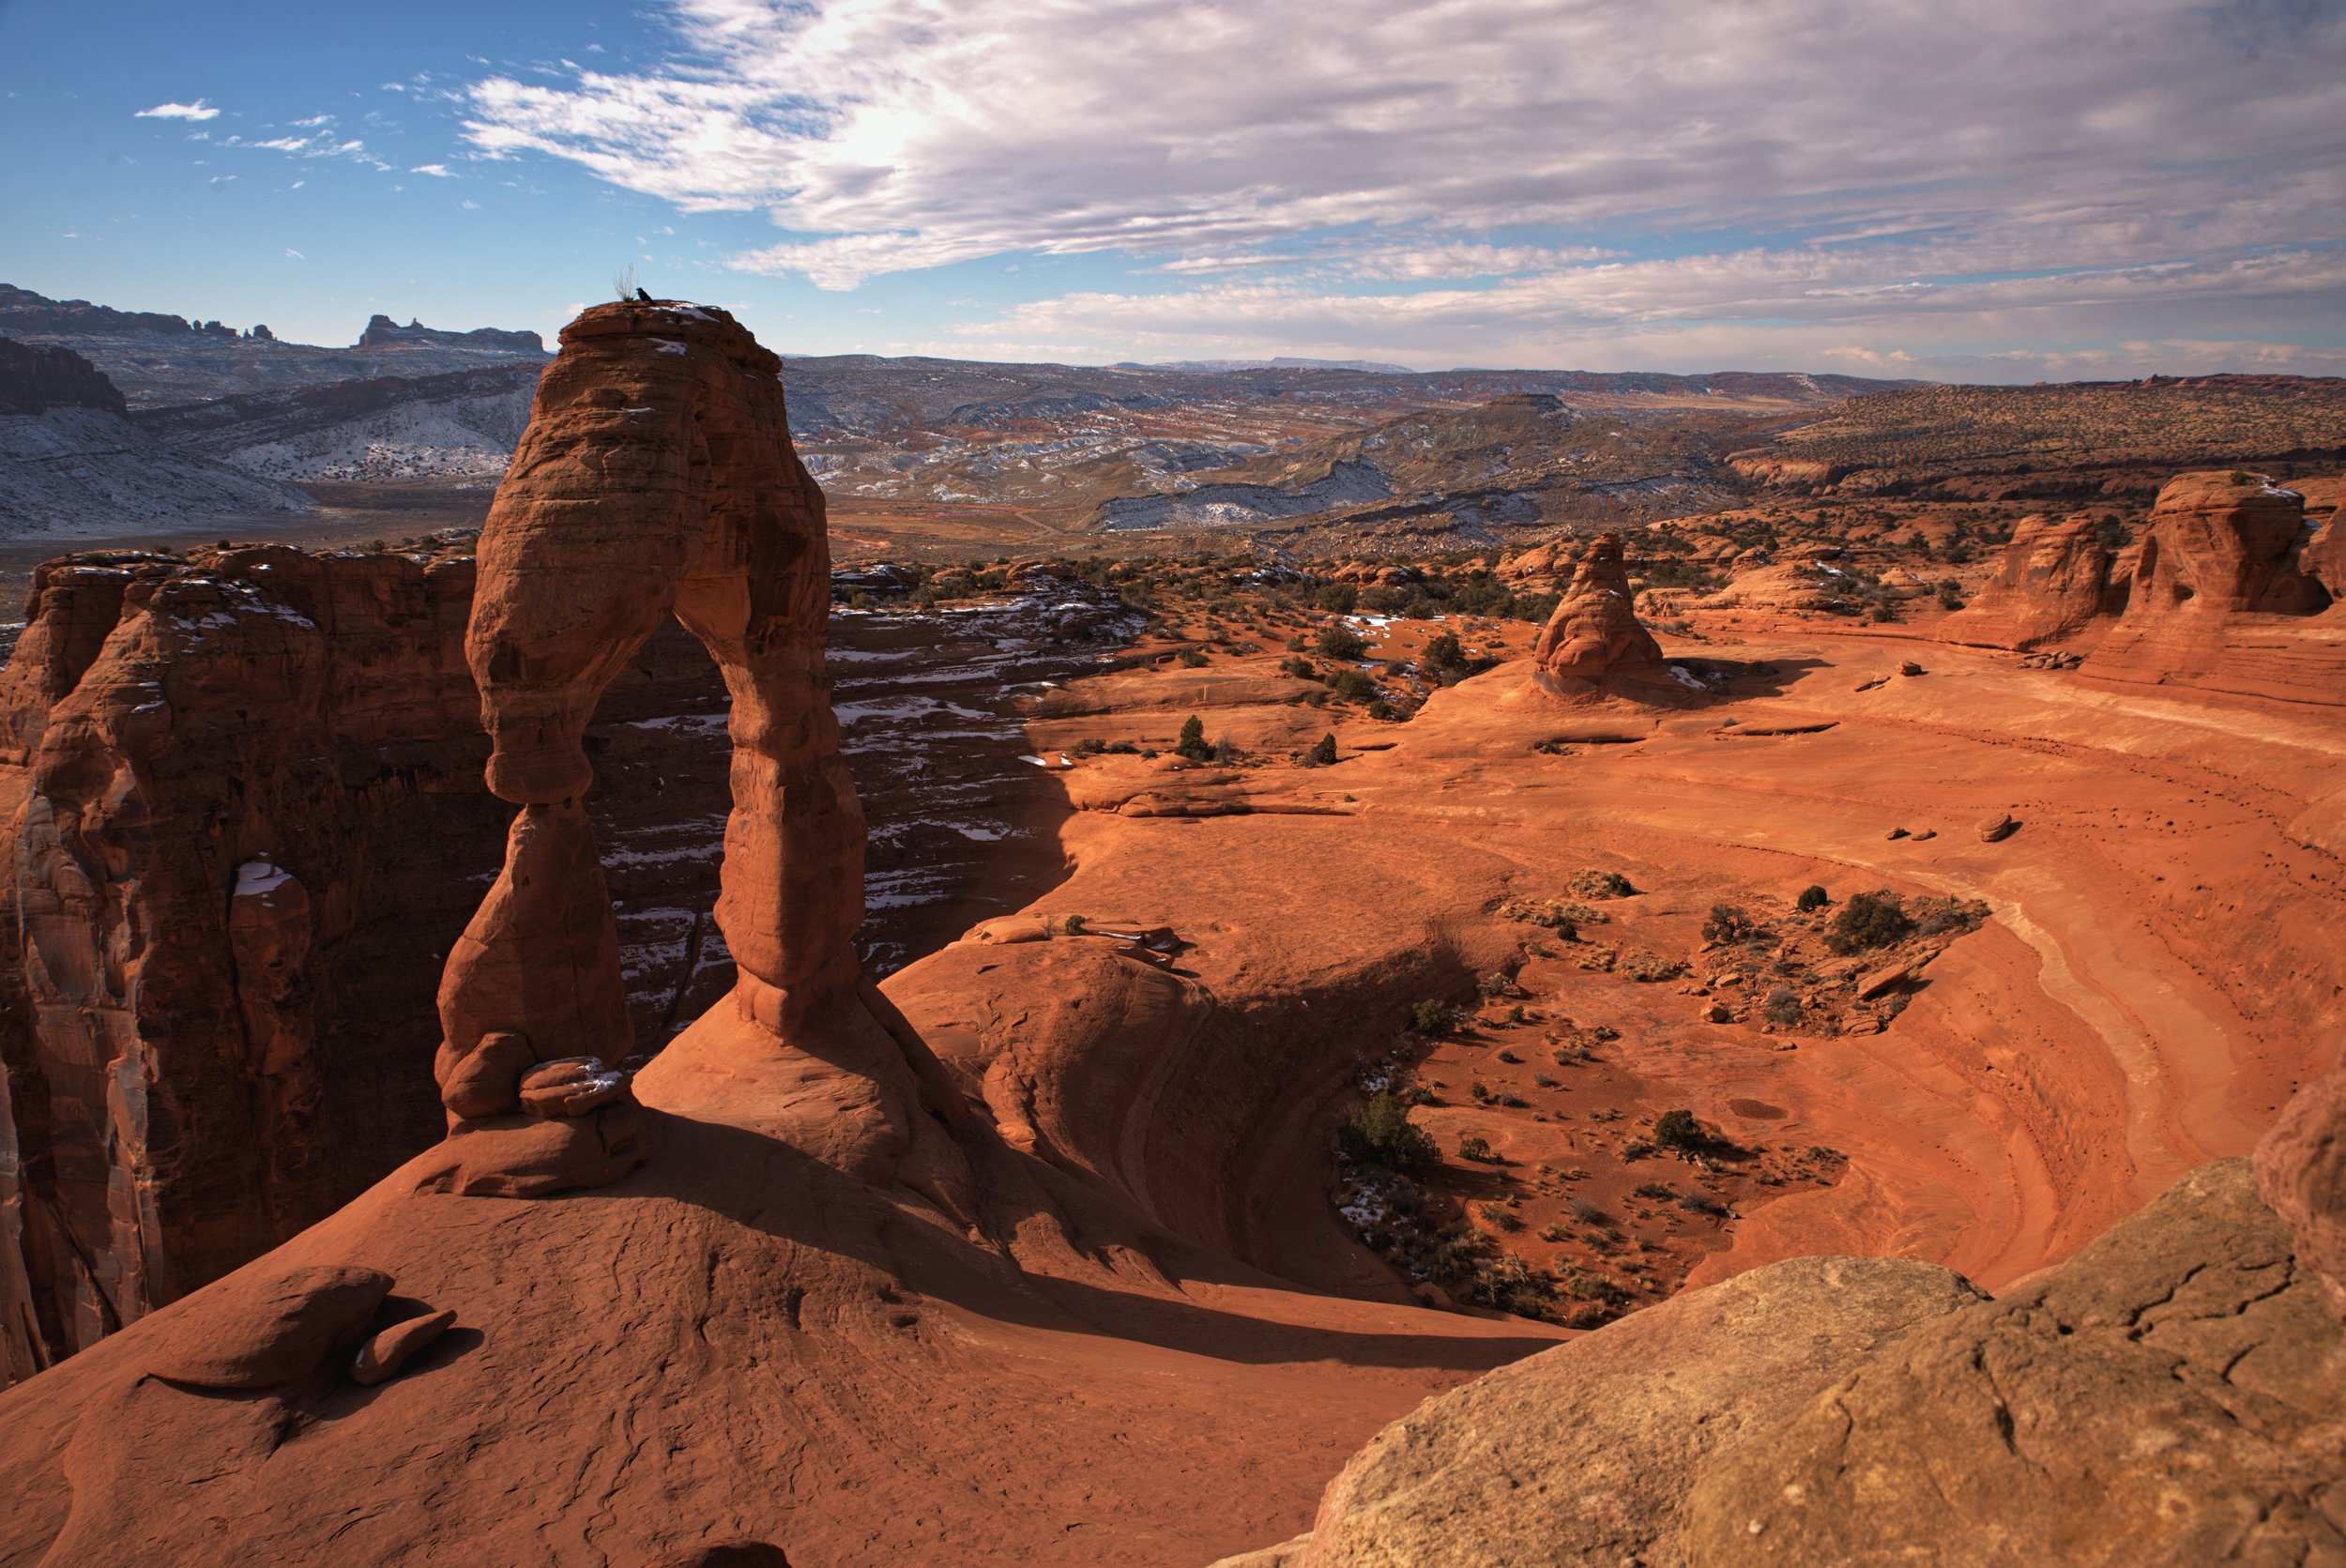 The sandstone bowl that Delicate Arch stands atop is impressive even without the Arch.